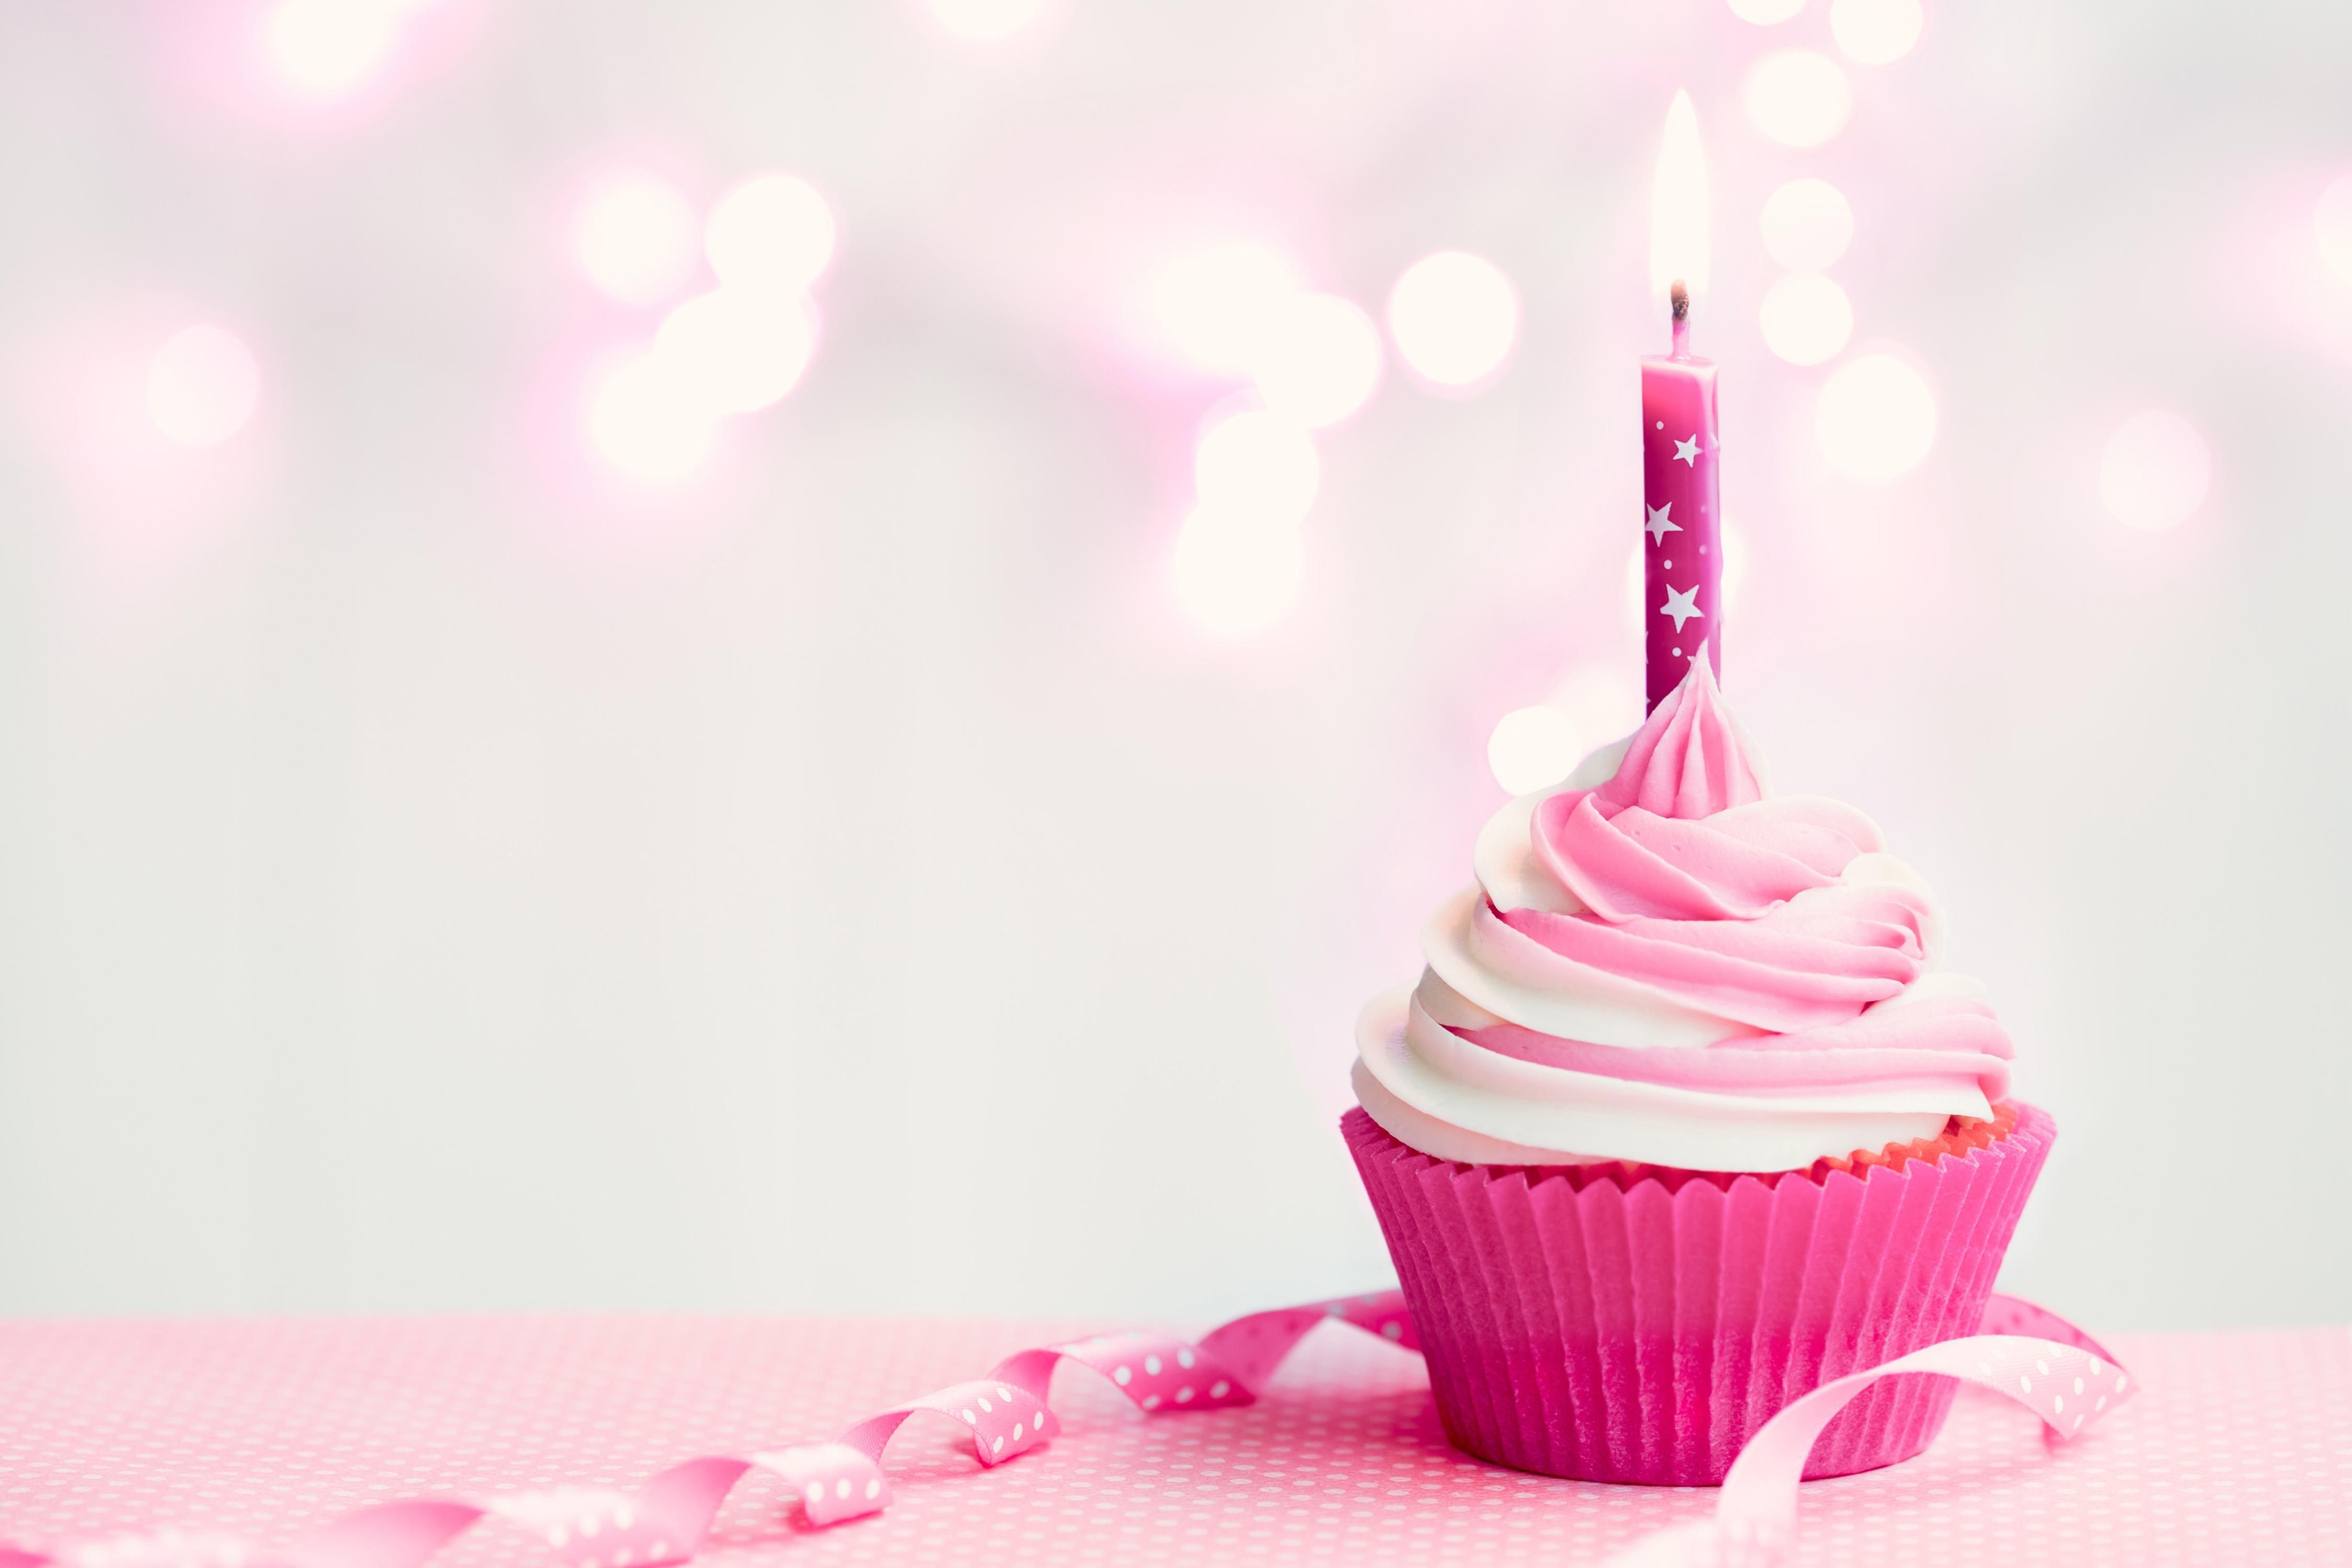 birthday_cupcake_pink_happy_candle_abstract_hd-wallpaper-1798723